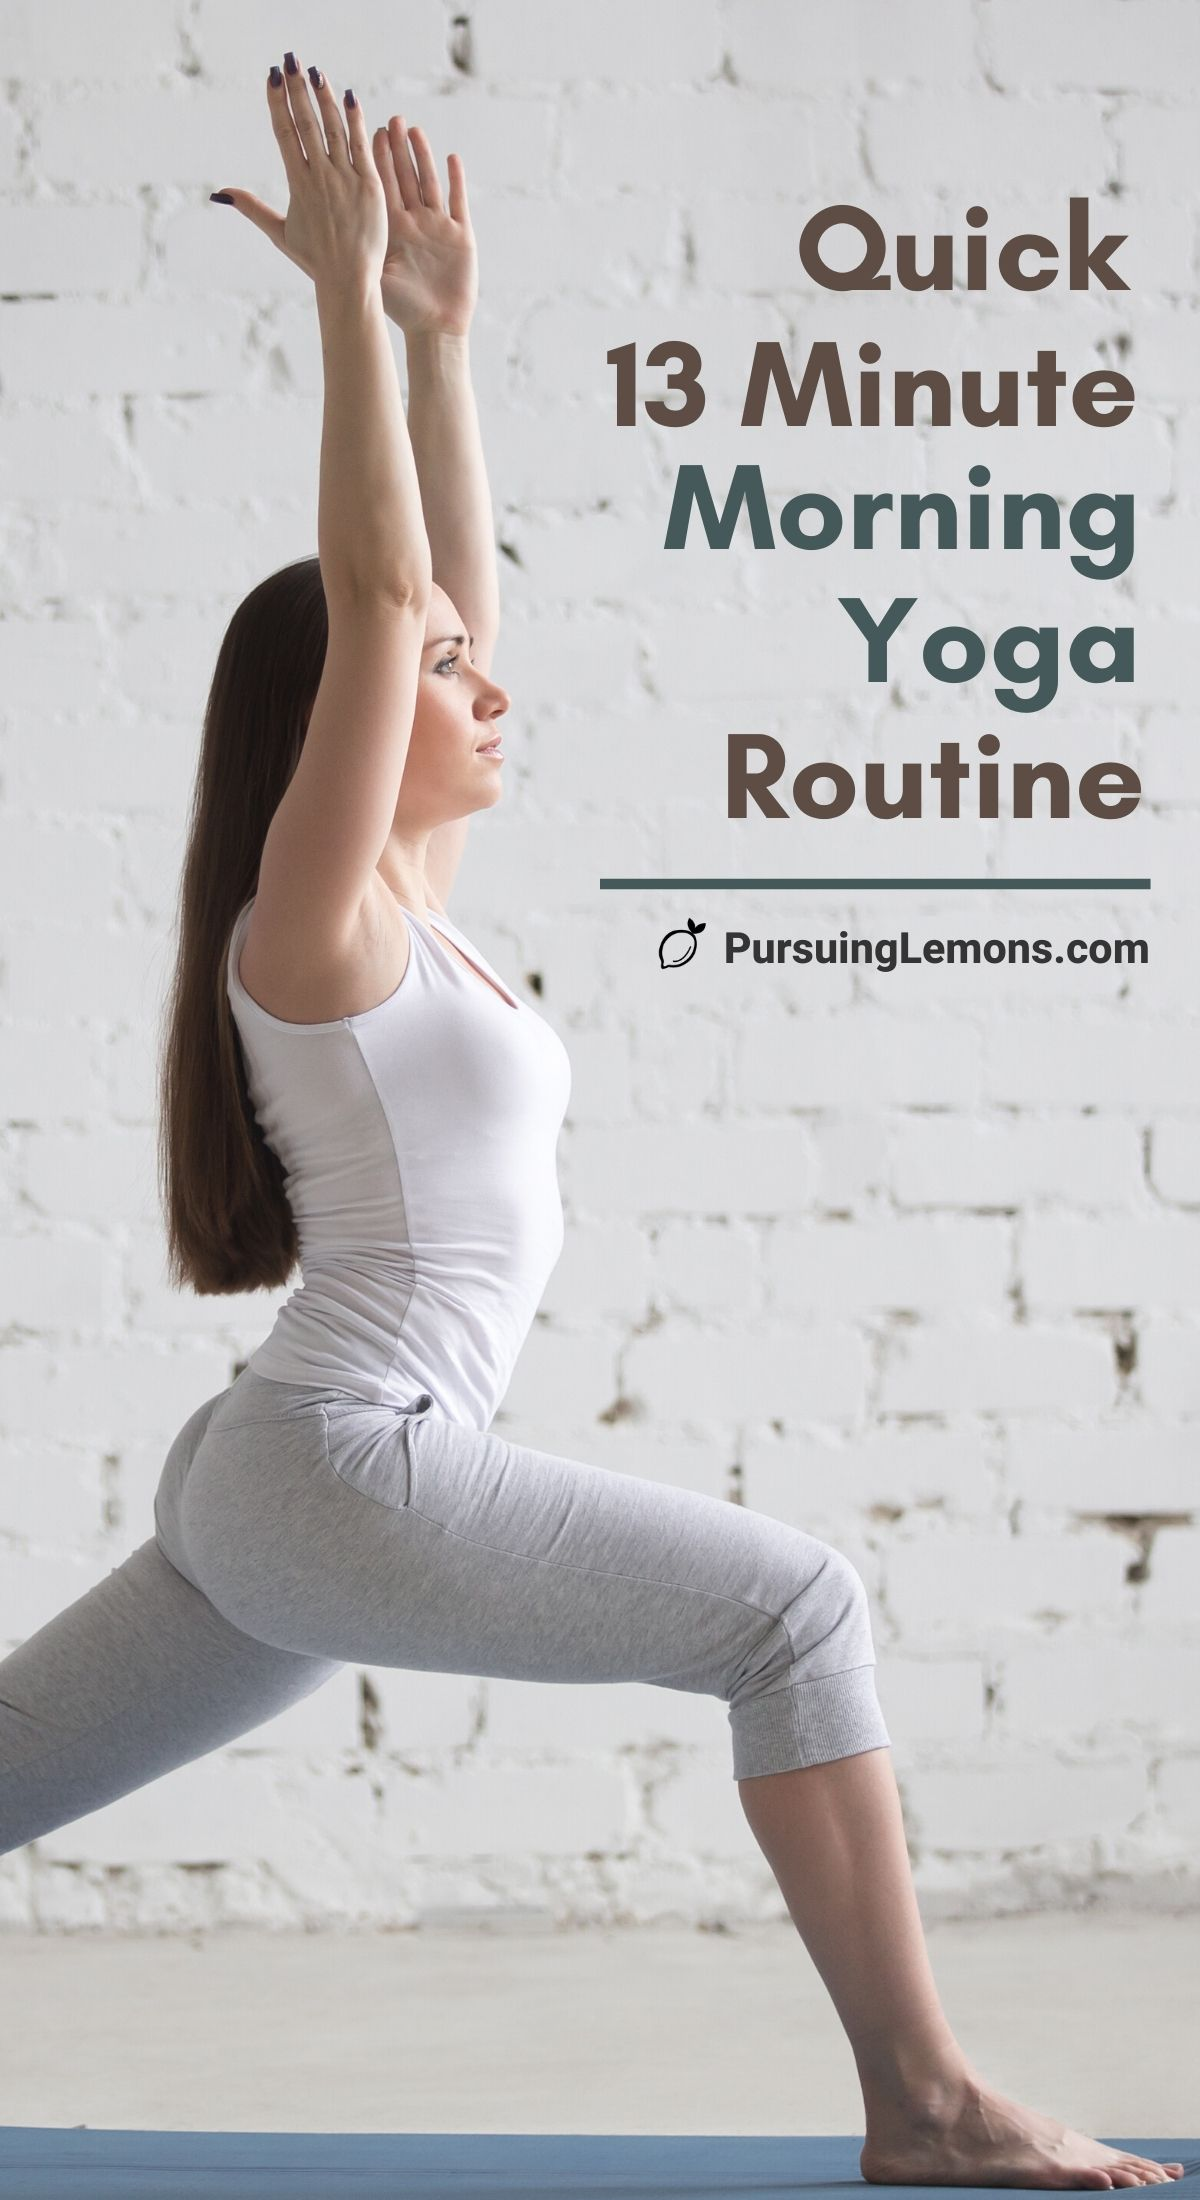 Morning yoga routines plus morning yoga stretches will help you start your day right, even if you're a yoga beginner! You can do this yoga at home too! Start your morning with these morning yoga poses for a better mood and energy! #morningyoga #yogaroutine #yoga